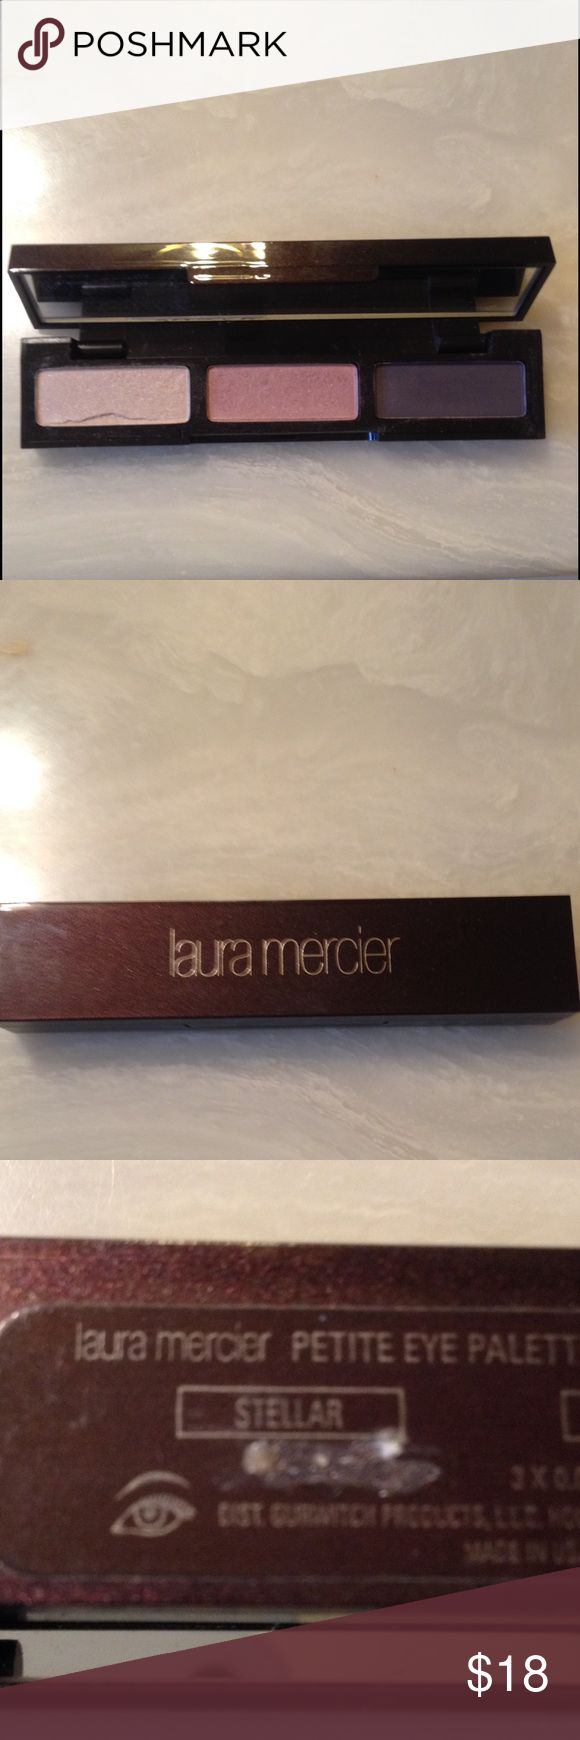 Laura Mercier Eyeshadow Palette Laura Mercier Petite Eyeshadow Palette. Colors are Stellar, Primrose, Black Plum. There is a small chip in stellar. Please see my other items for more great makeup from brands like MAC, Stila, Bare Minerals, Laura Mercier, Cargo, Makeup Forever. I love reasonable offers and bundles. GWP with 2 items New Bare Minerals Lipgloss. With 3 items Cargo Eyeliner in Black Sea. 😺 Laura Mercier Makeup Eyeshadow